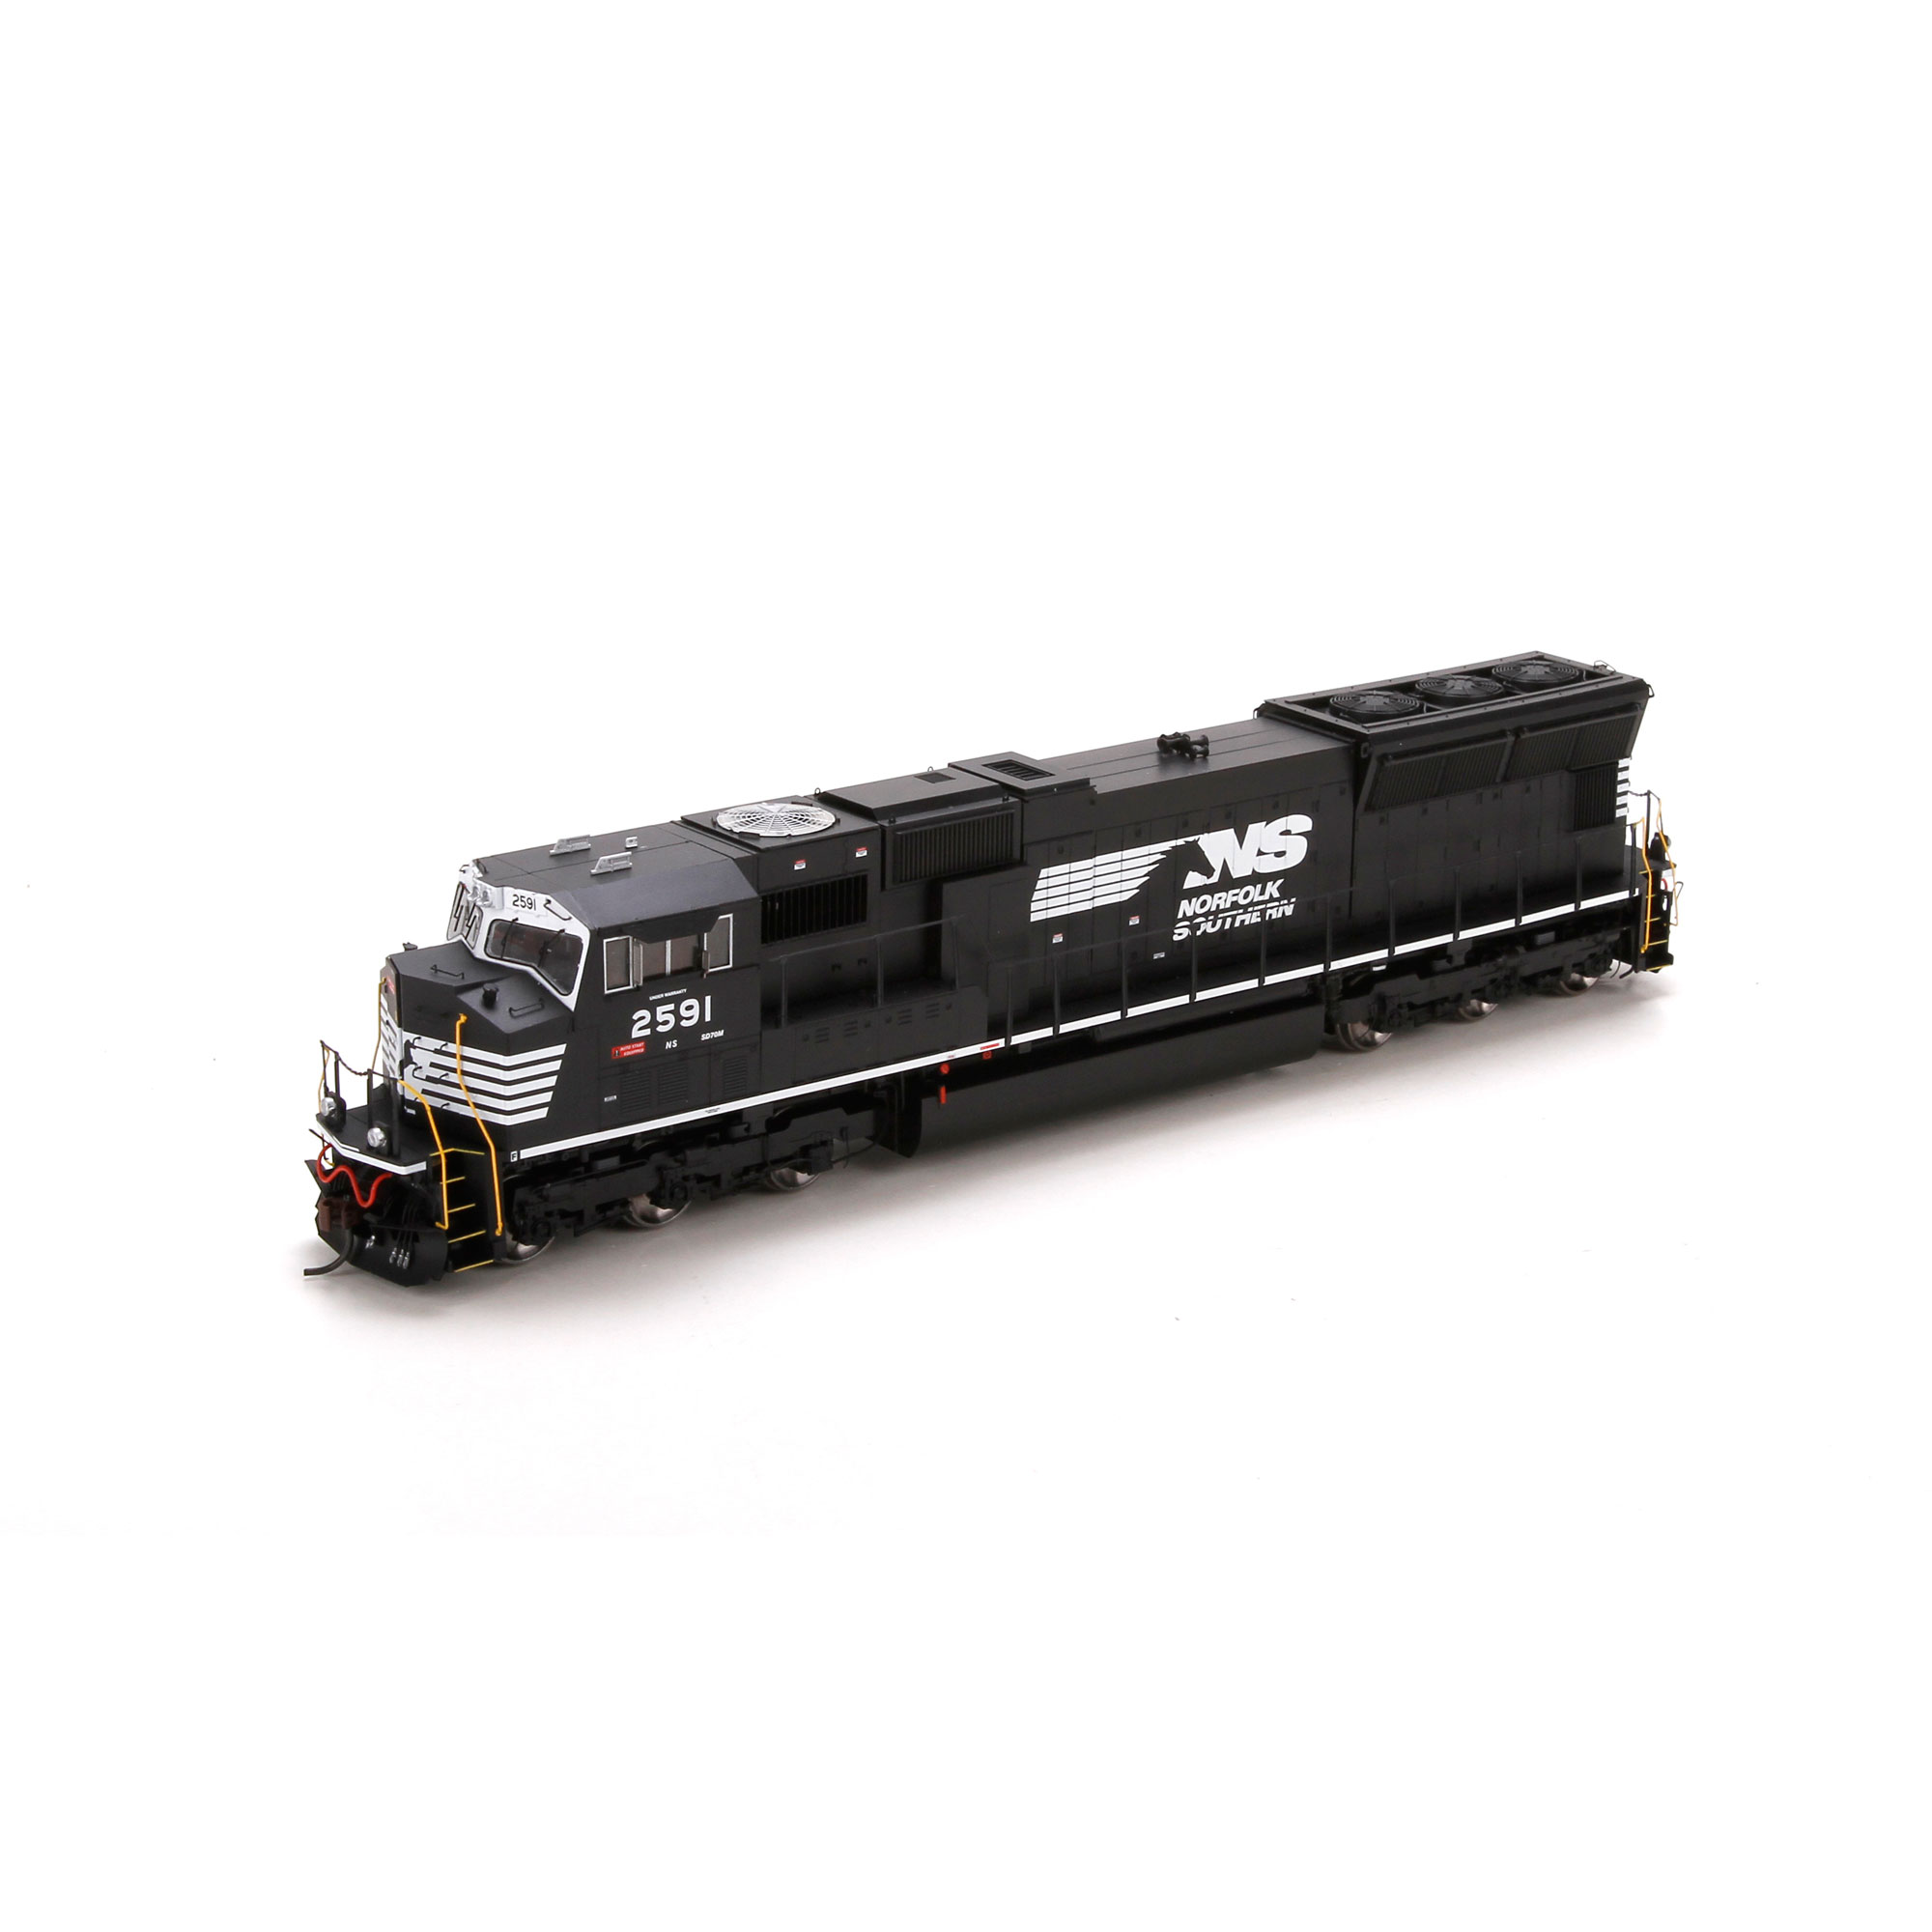 HO SD70M w/Flared Radiators w/DCC & Sound,NS #2591